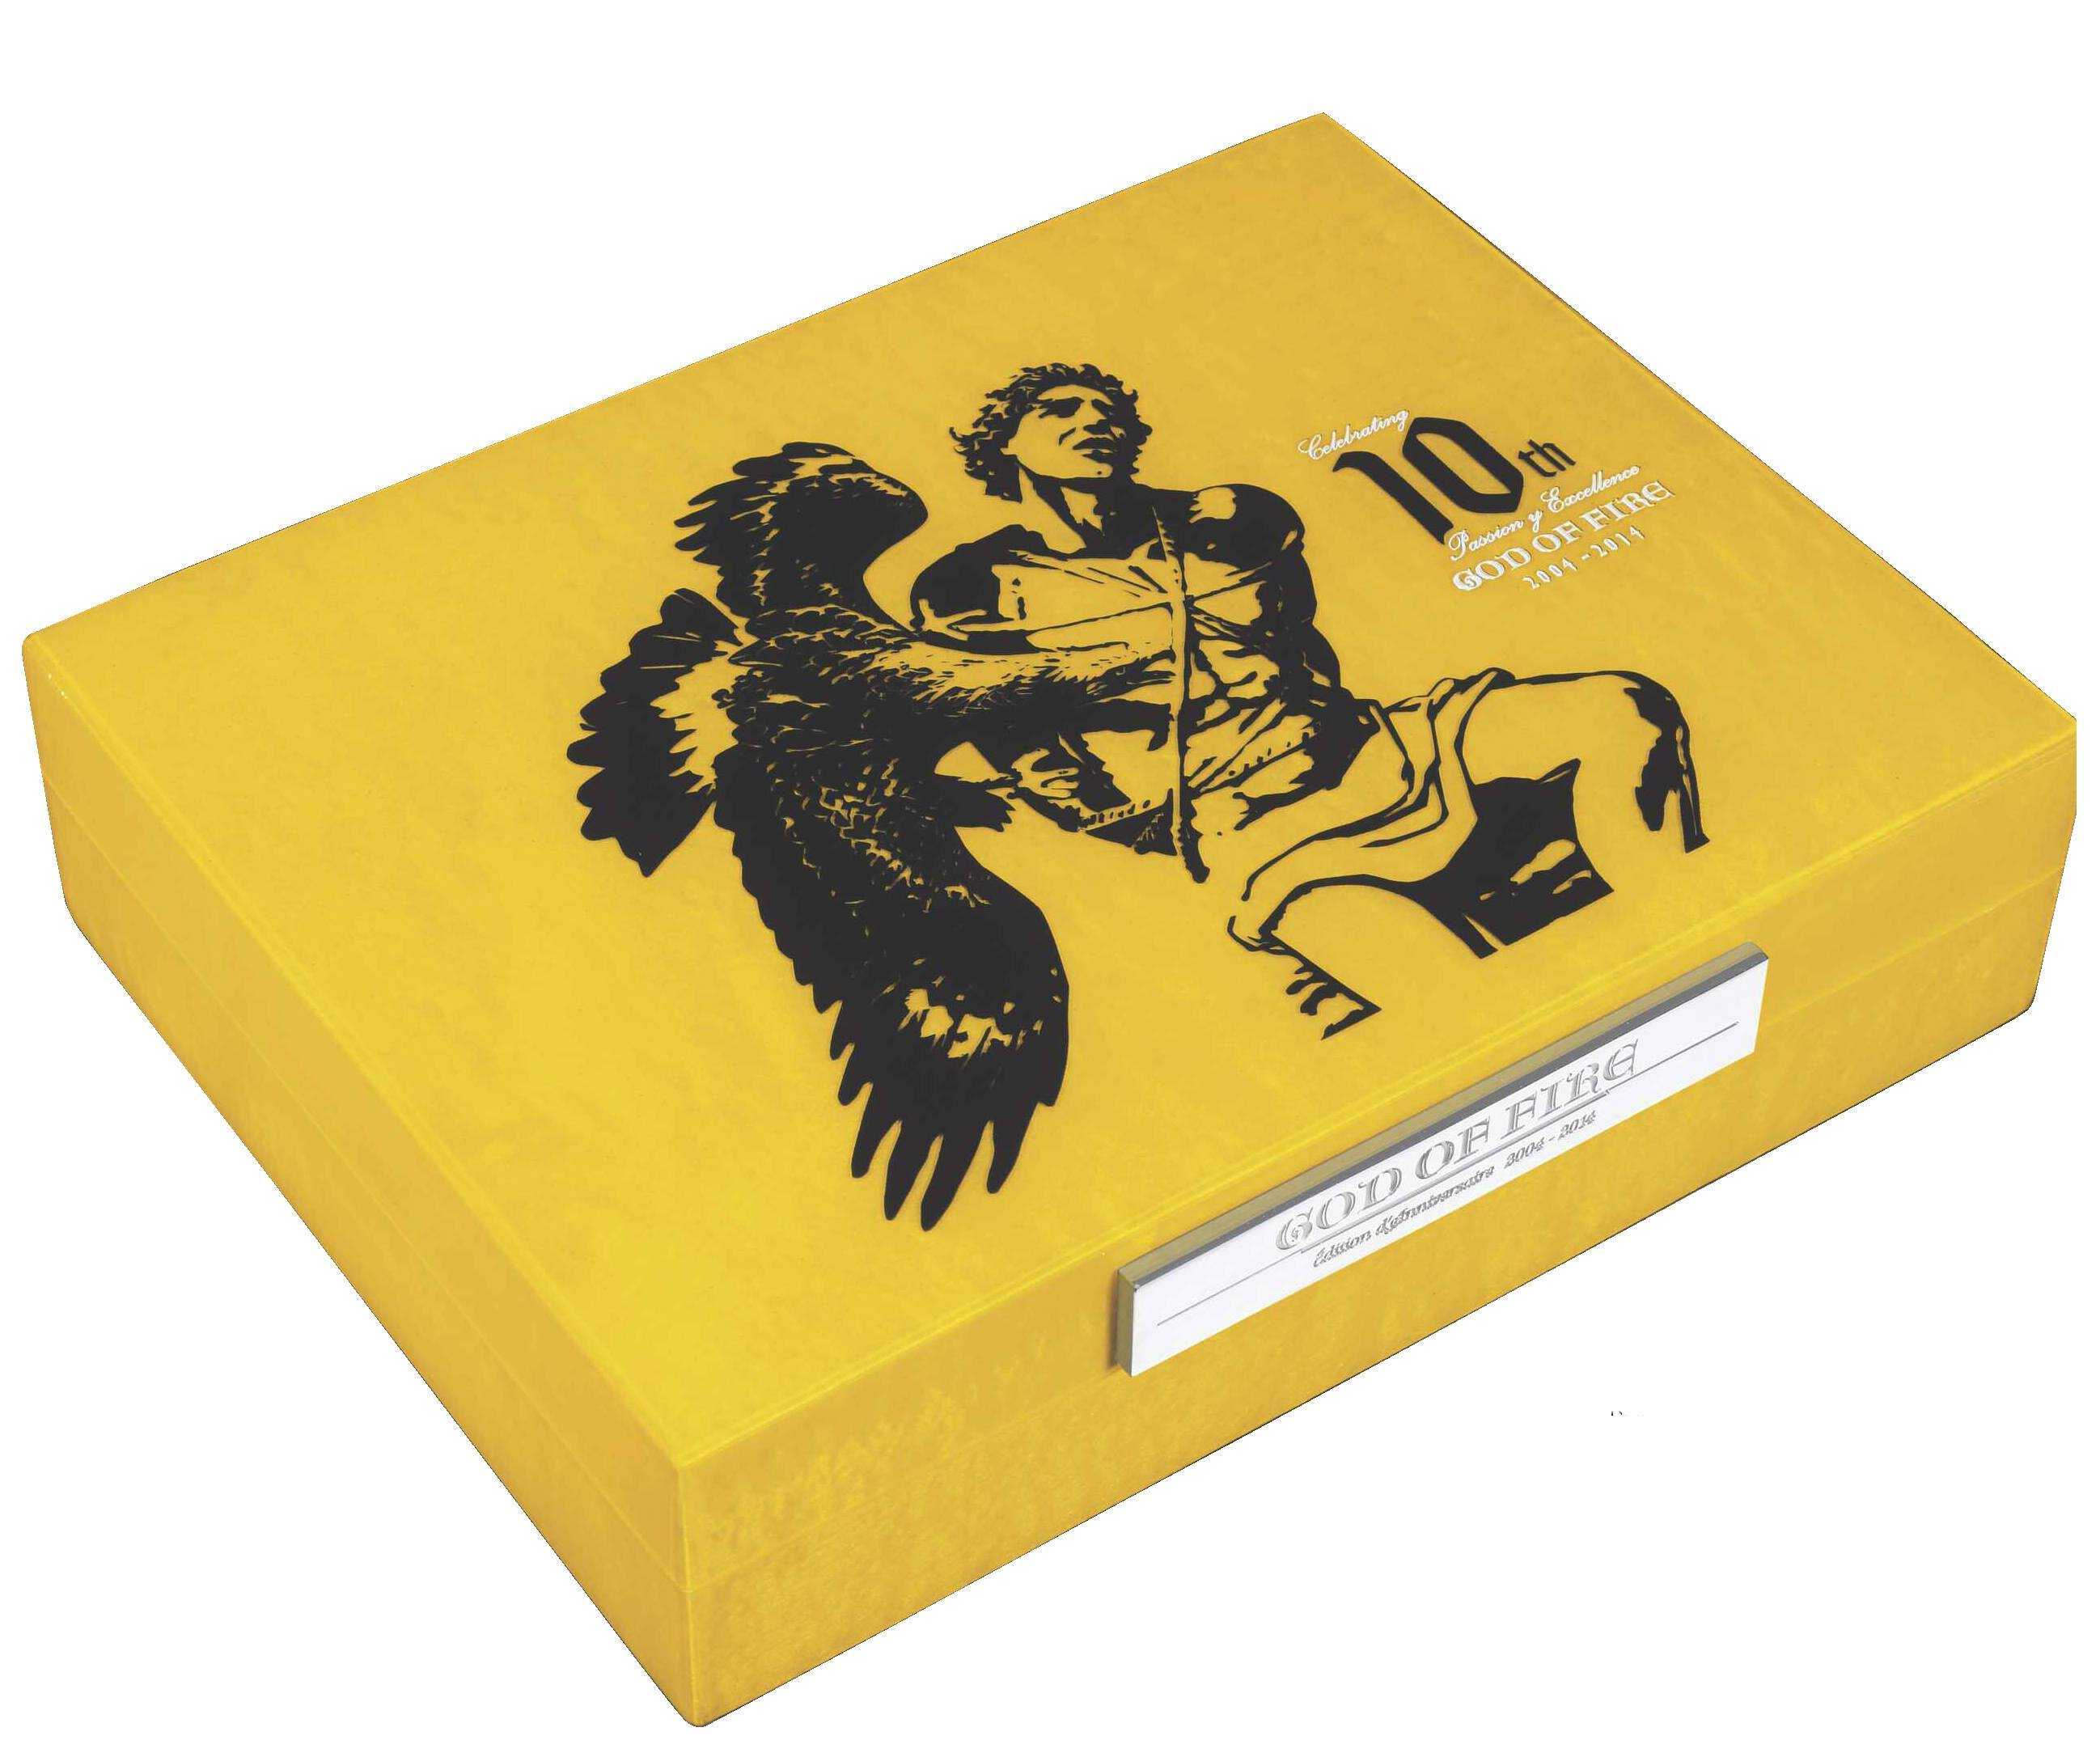 Prometheus 2014 God of Fire Travel Humidor yellow